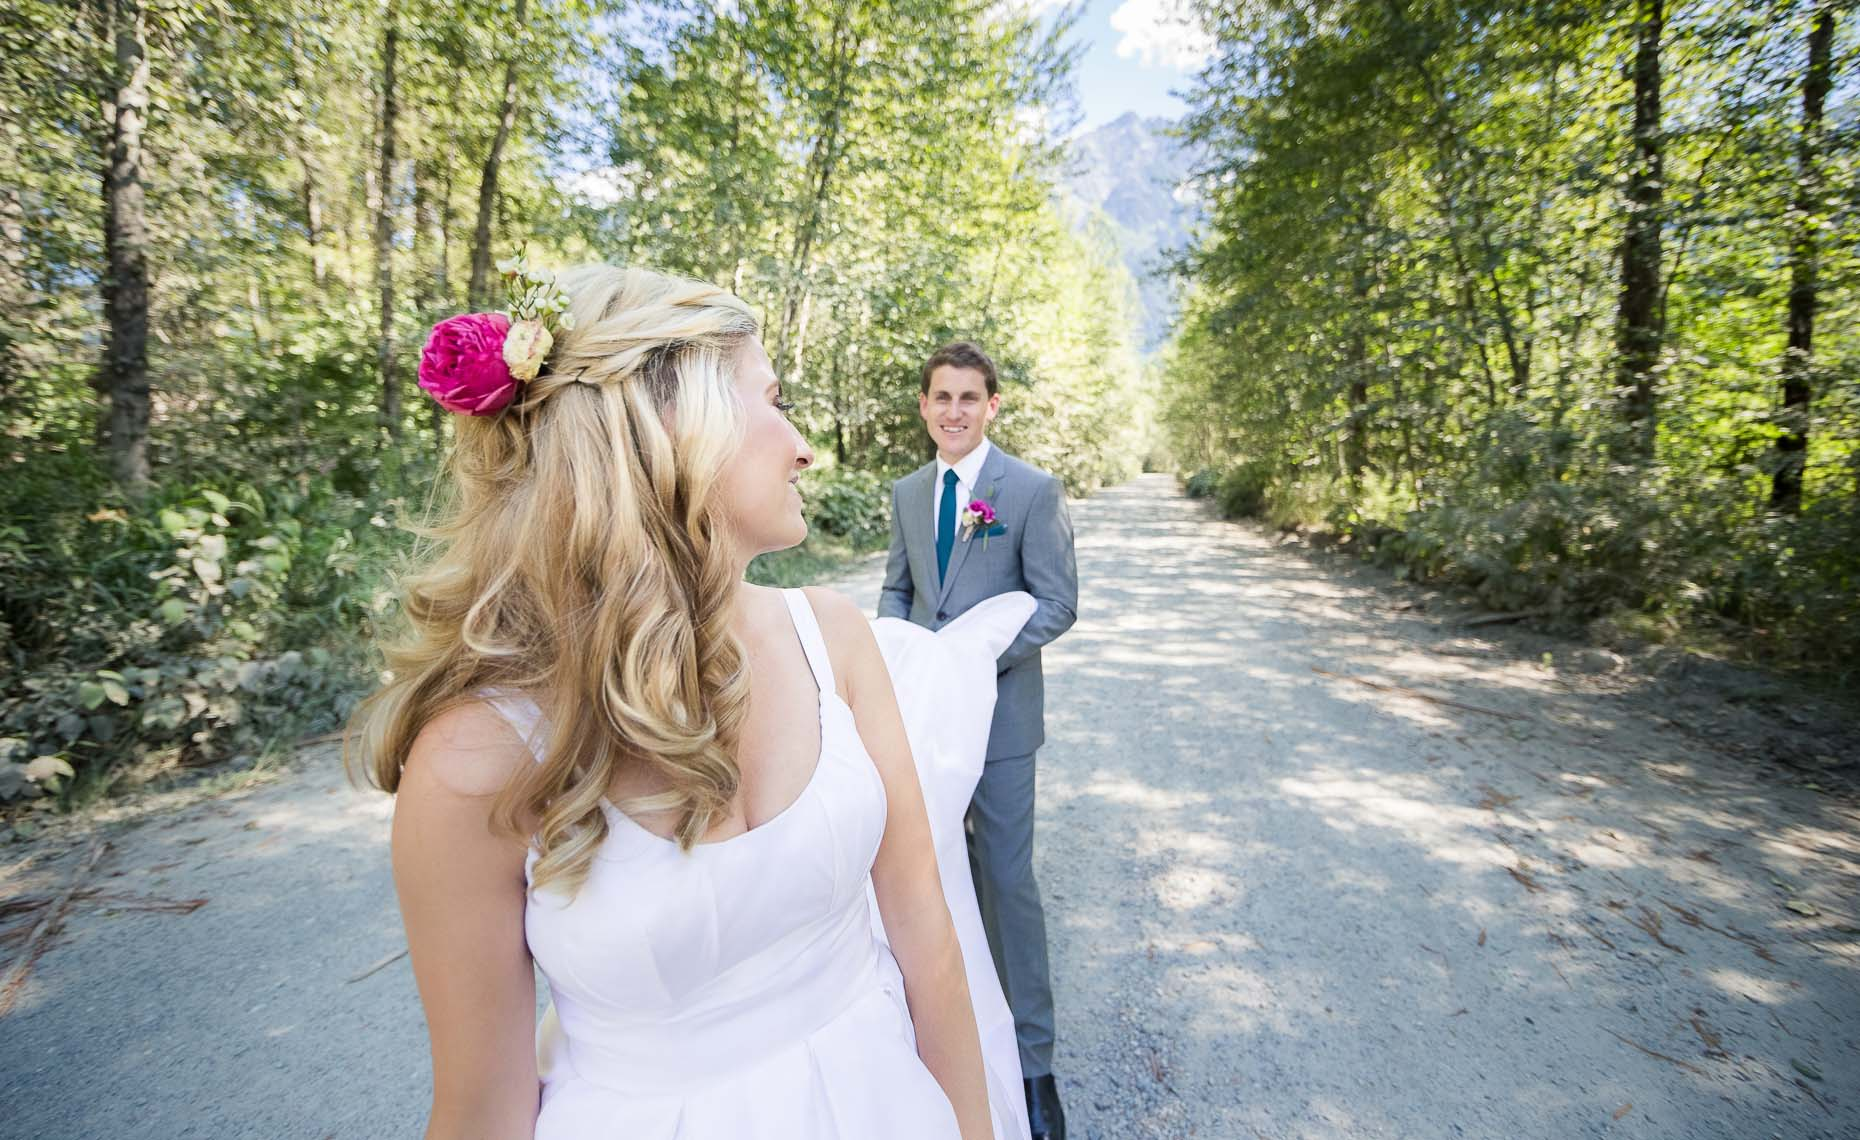 First look in the trees before whistler wedding ceremony.